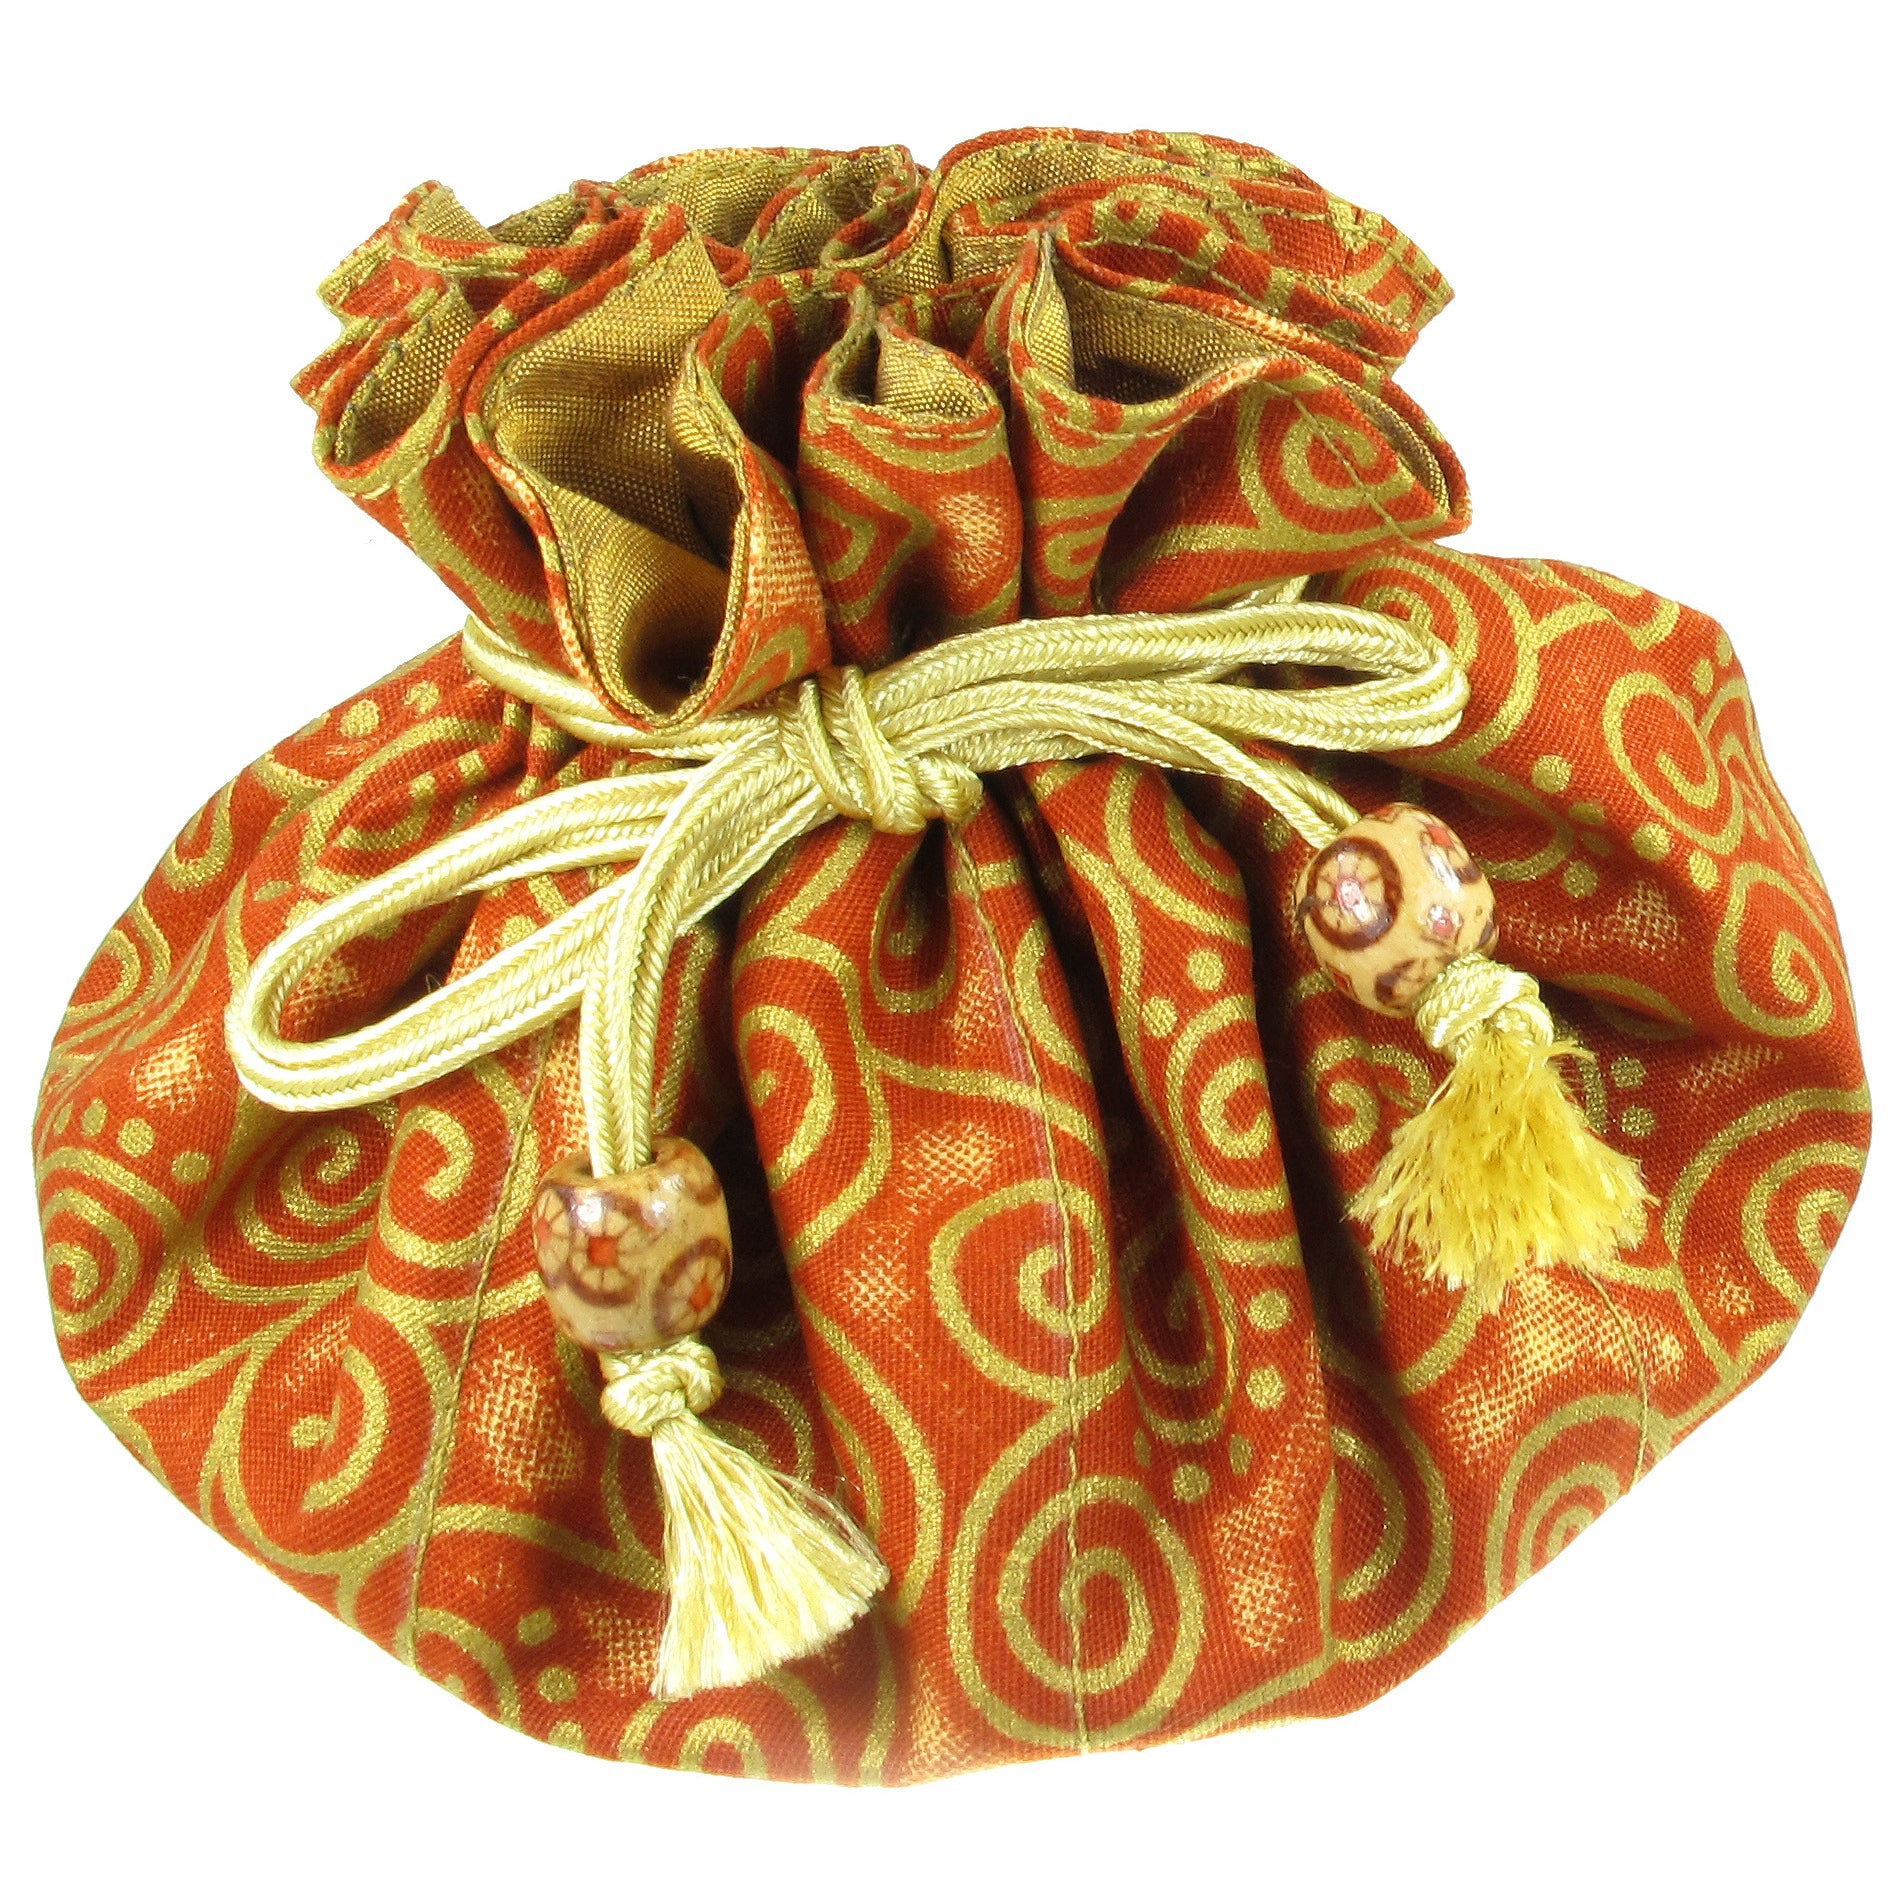 Cotton Jewelry Pouch, 8 Pockets, Rust